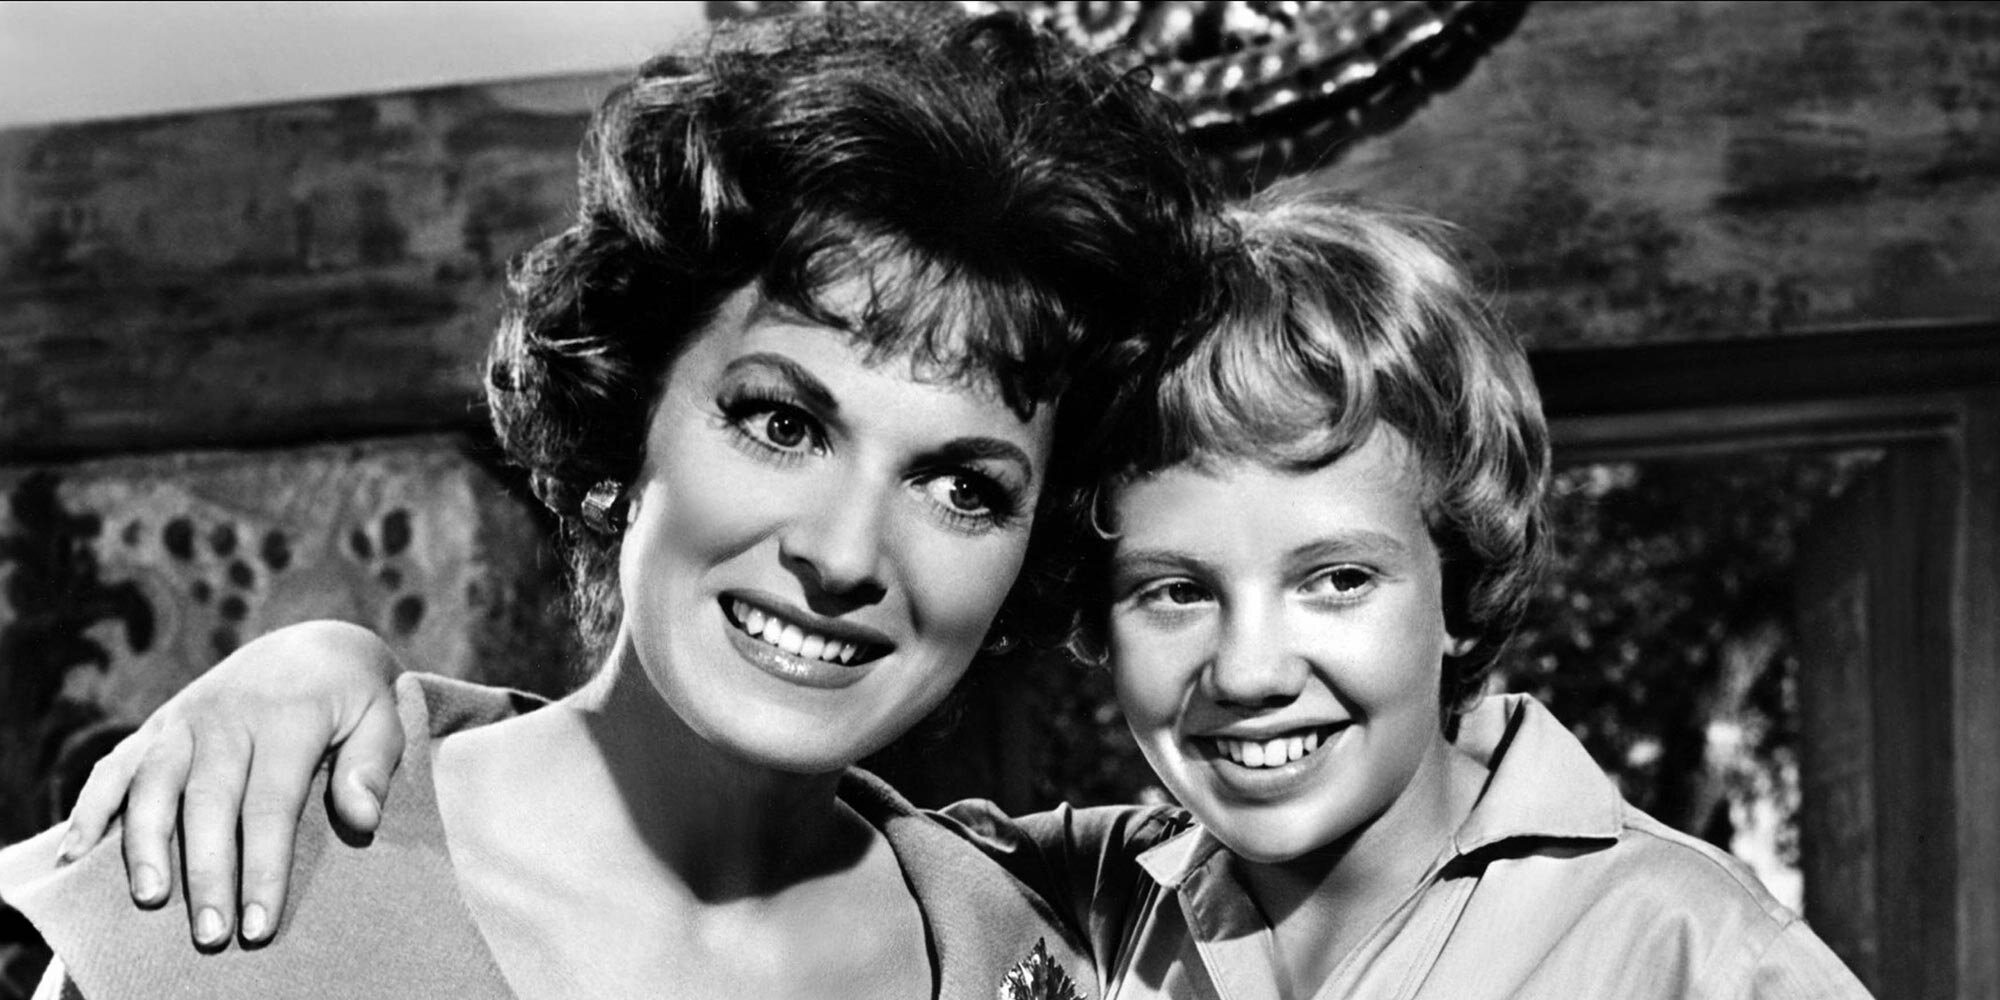 Hayley Mills looks back on making 'The Parent Trap' as film marks 60th anniversary